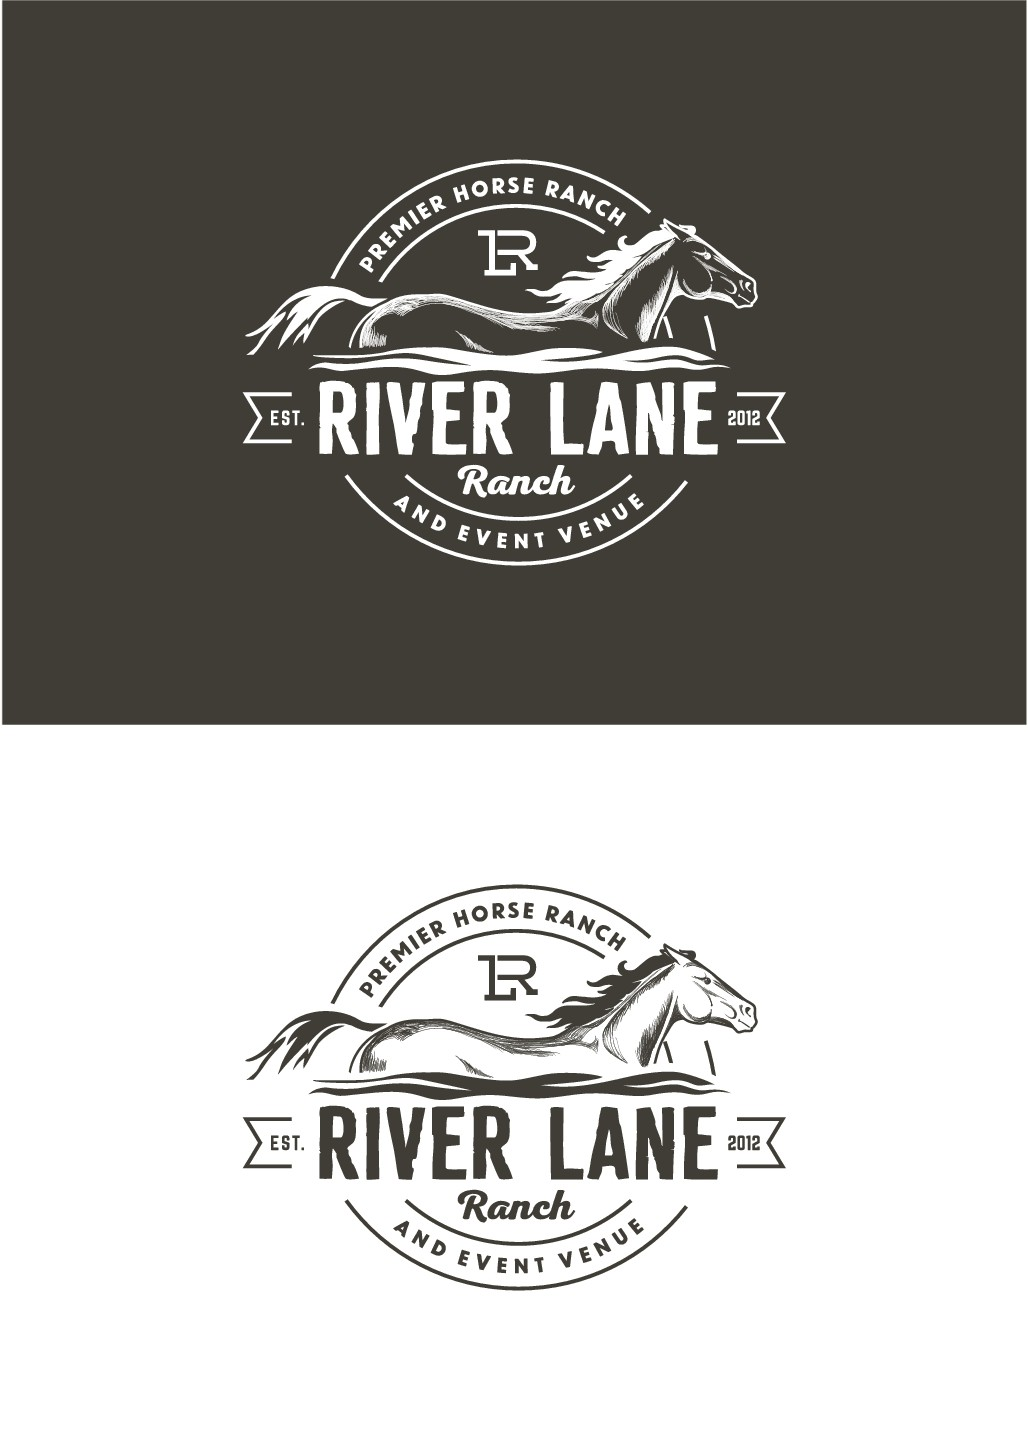 Stylish and unique logo for horse ranch